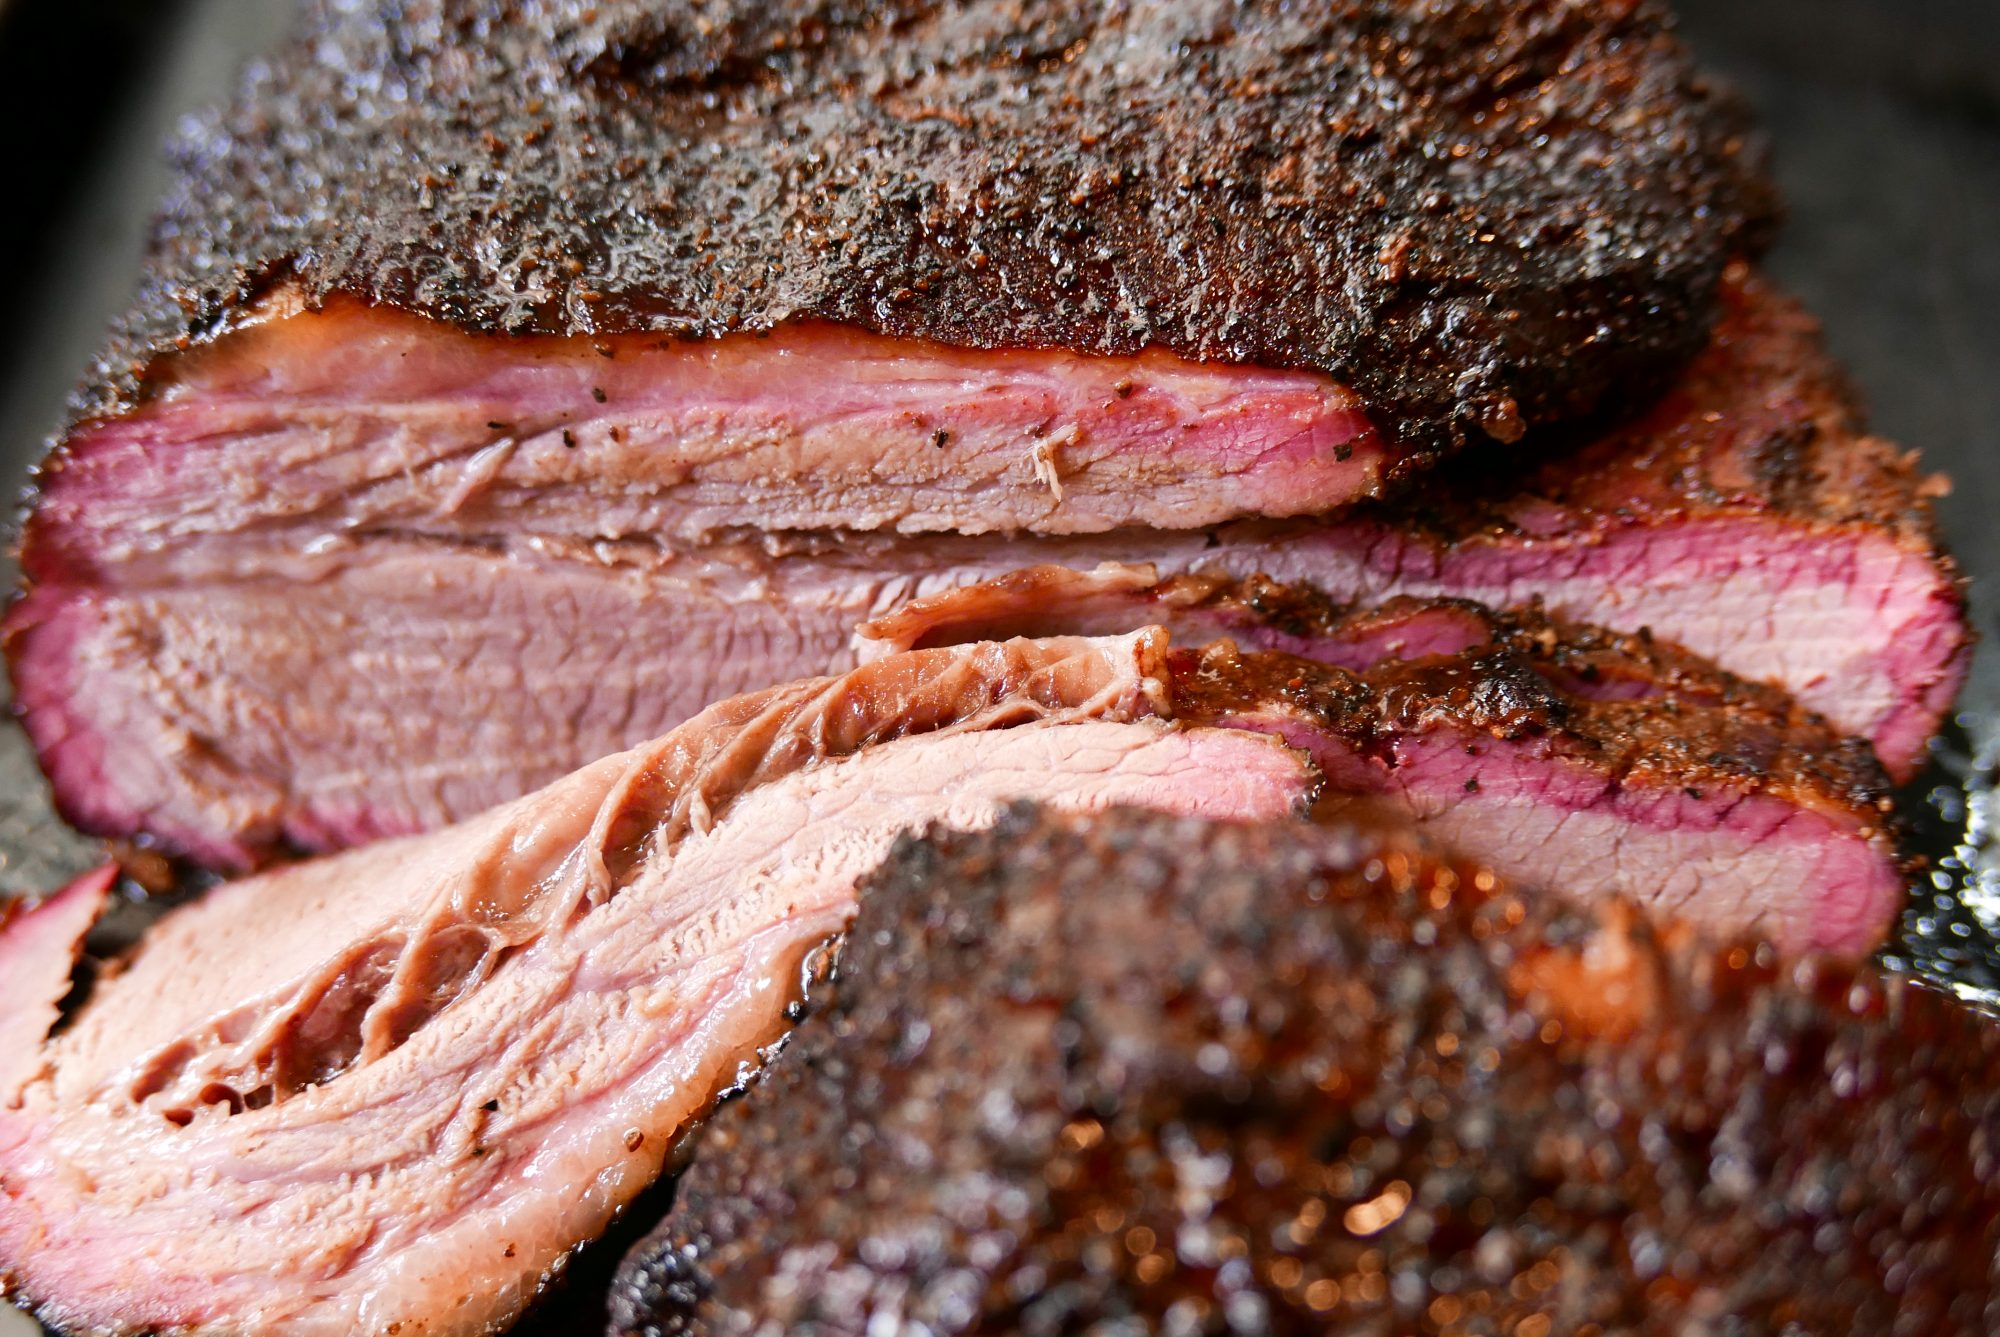 Bad News Y'All: The Price of Brisket is Climbing